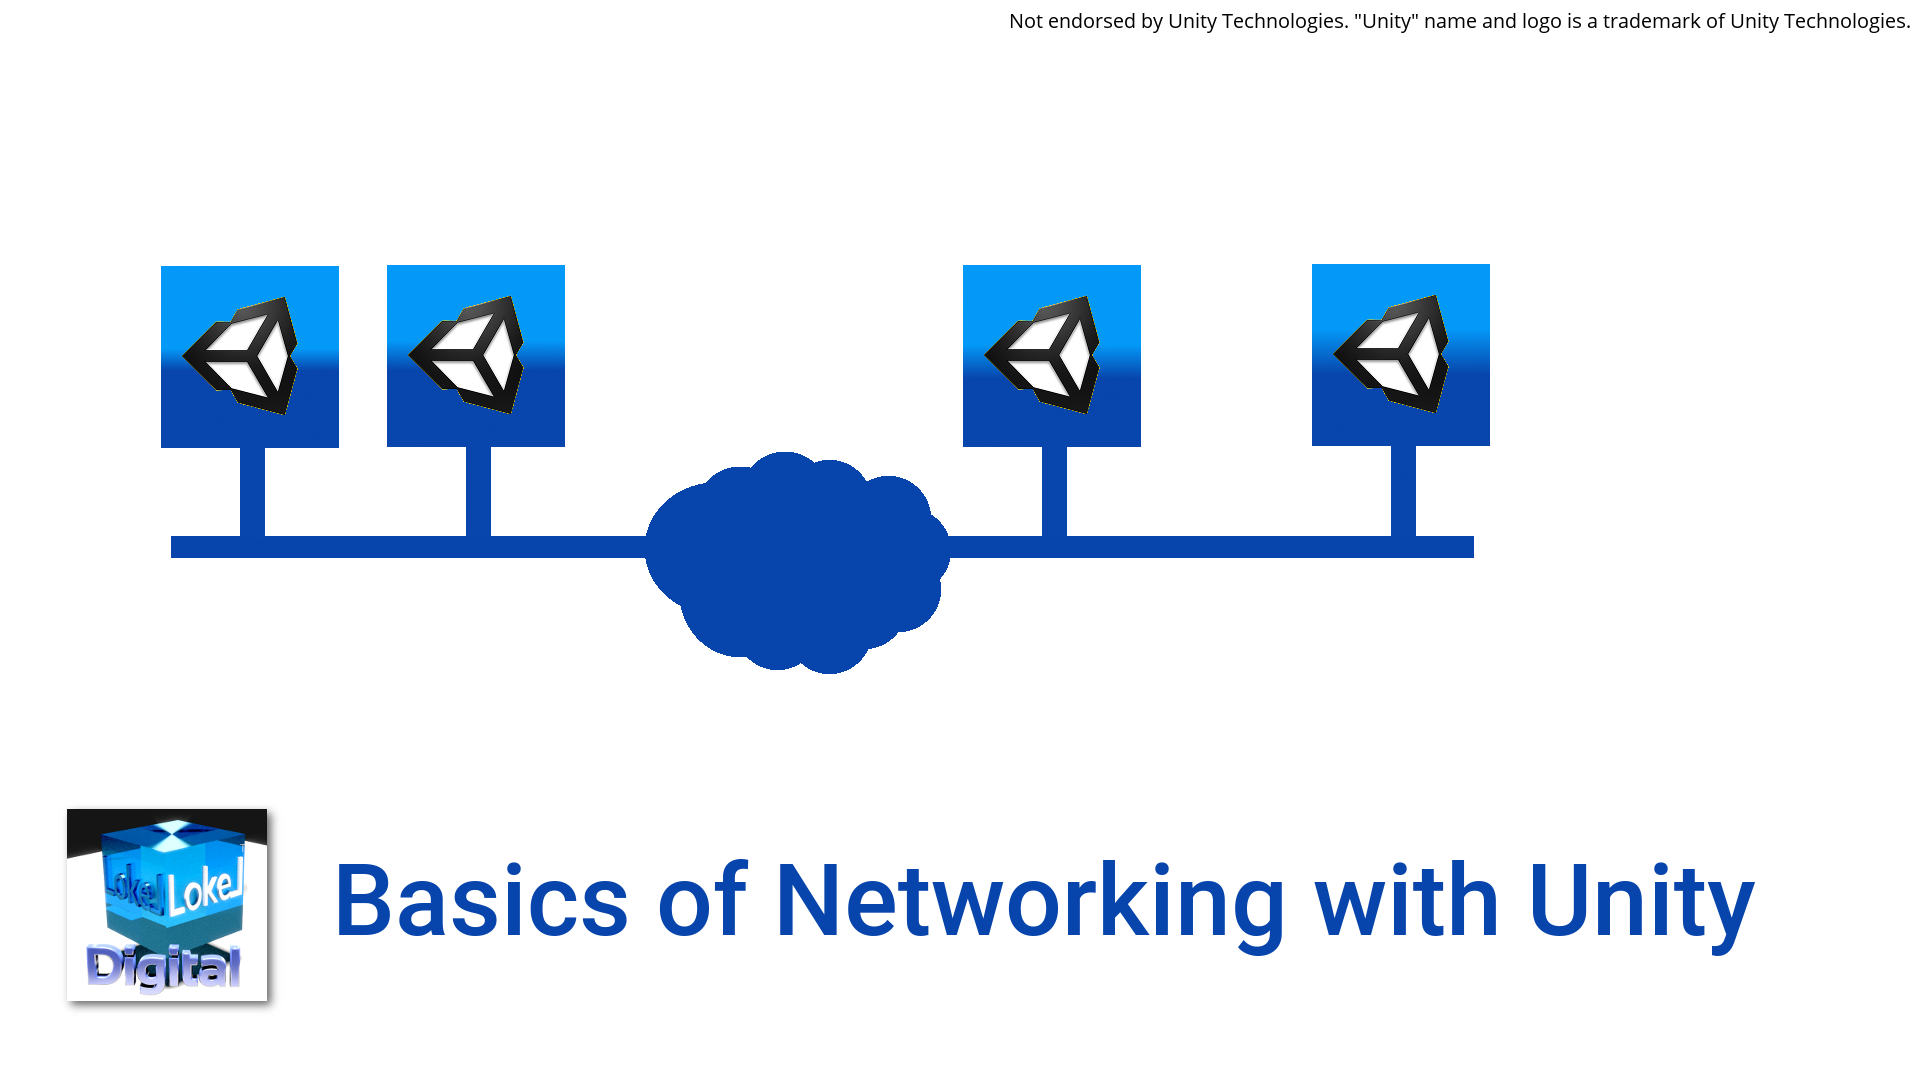 Basics of Networking with Unity